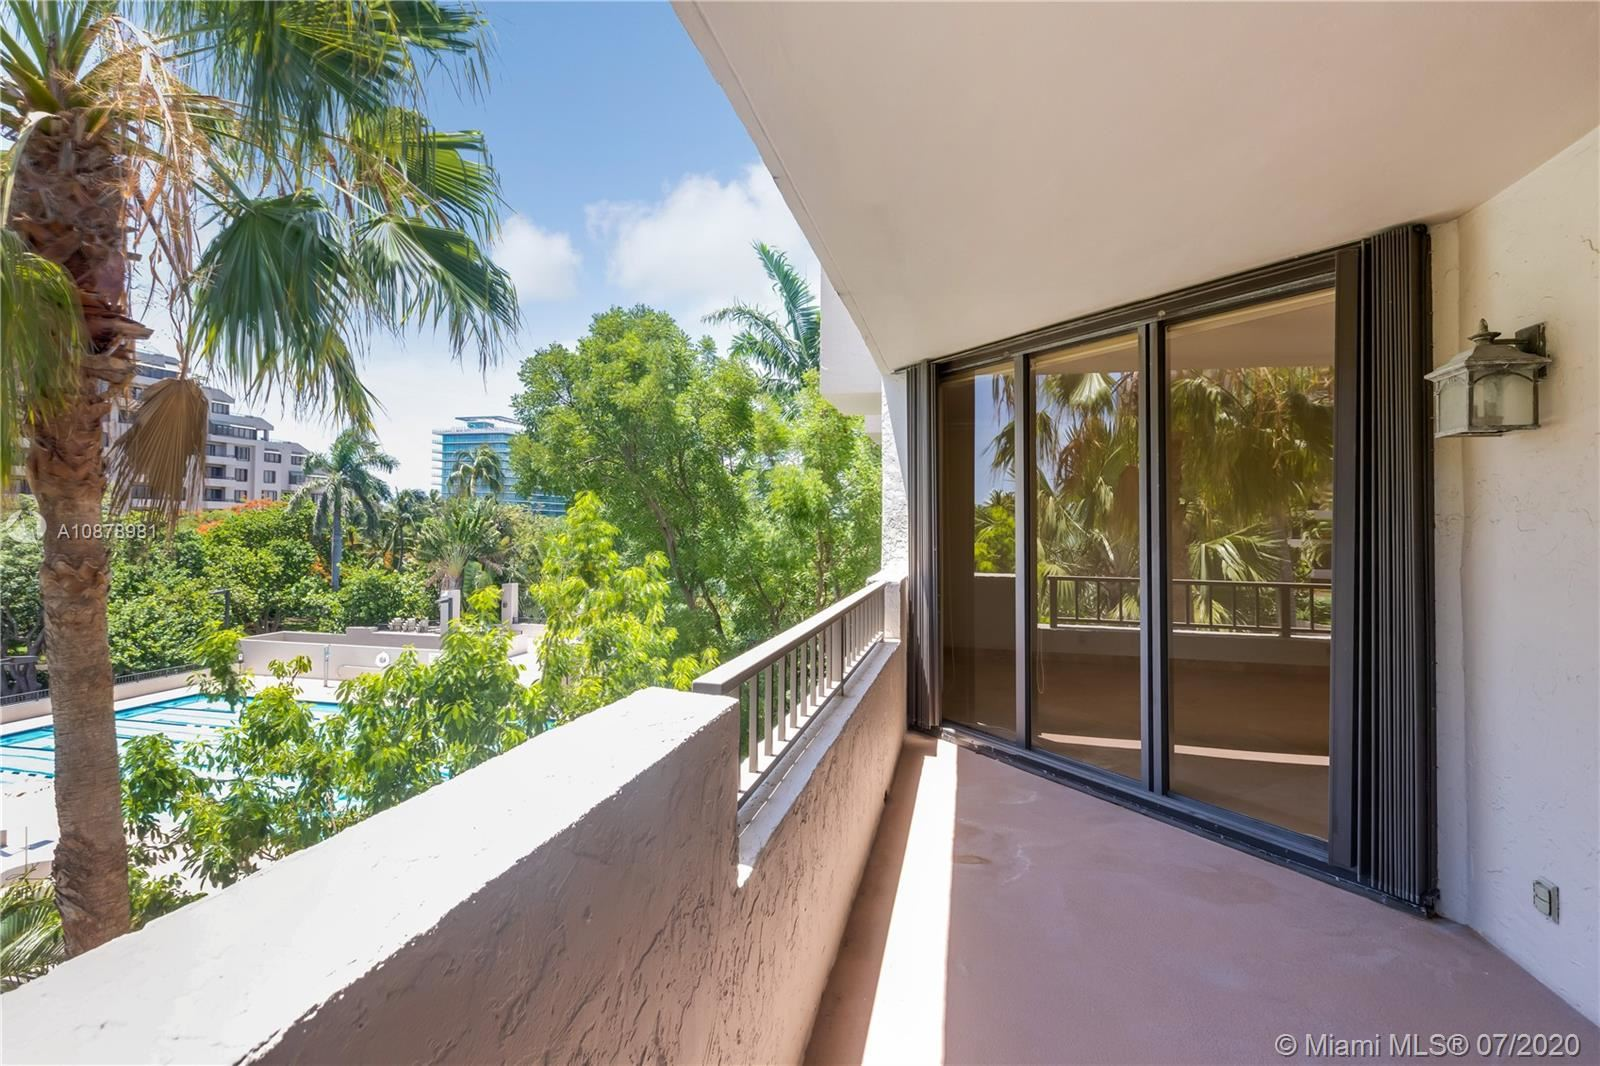 161 Crandon Blvd #314, Key Biscayne, FL 33149 - #: A10878981